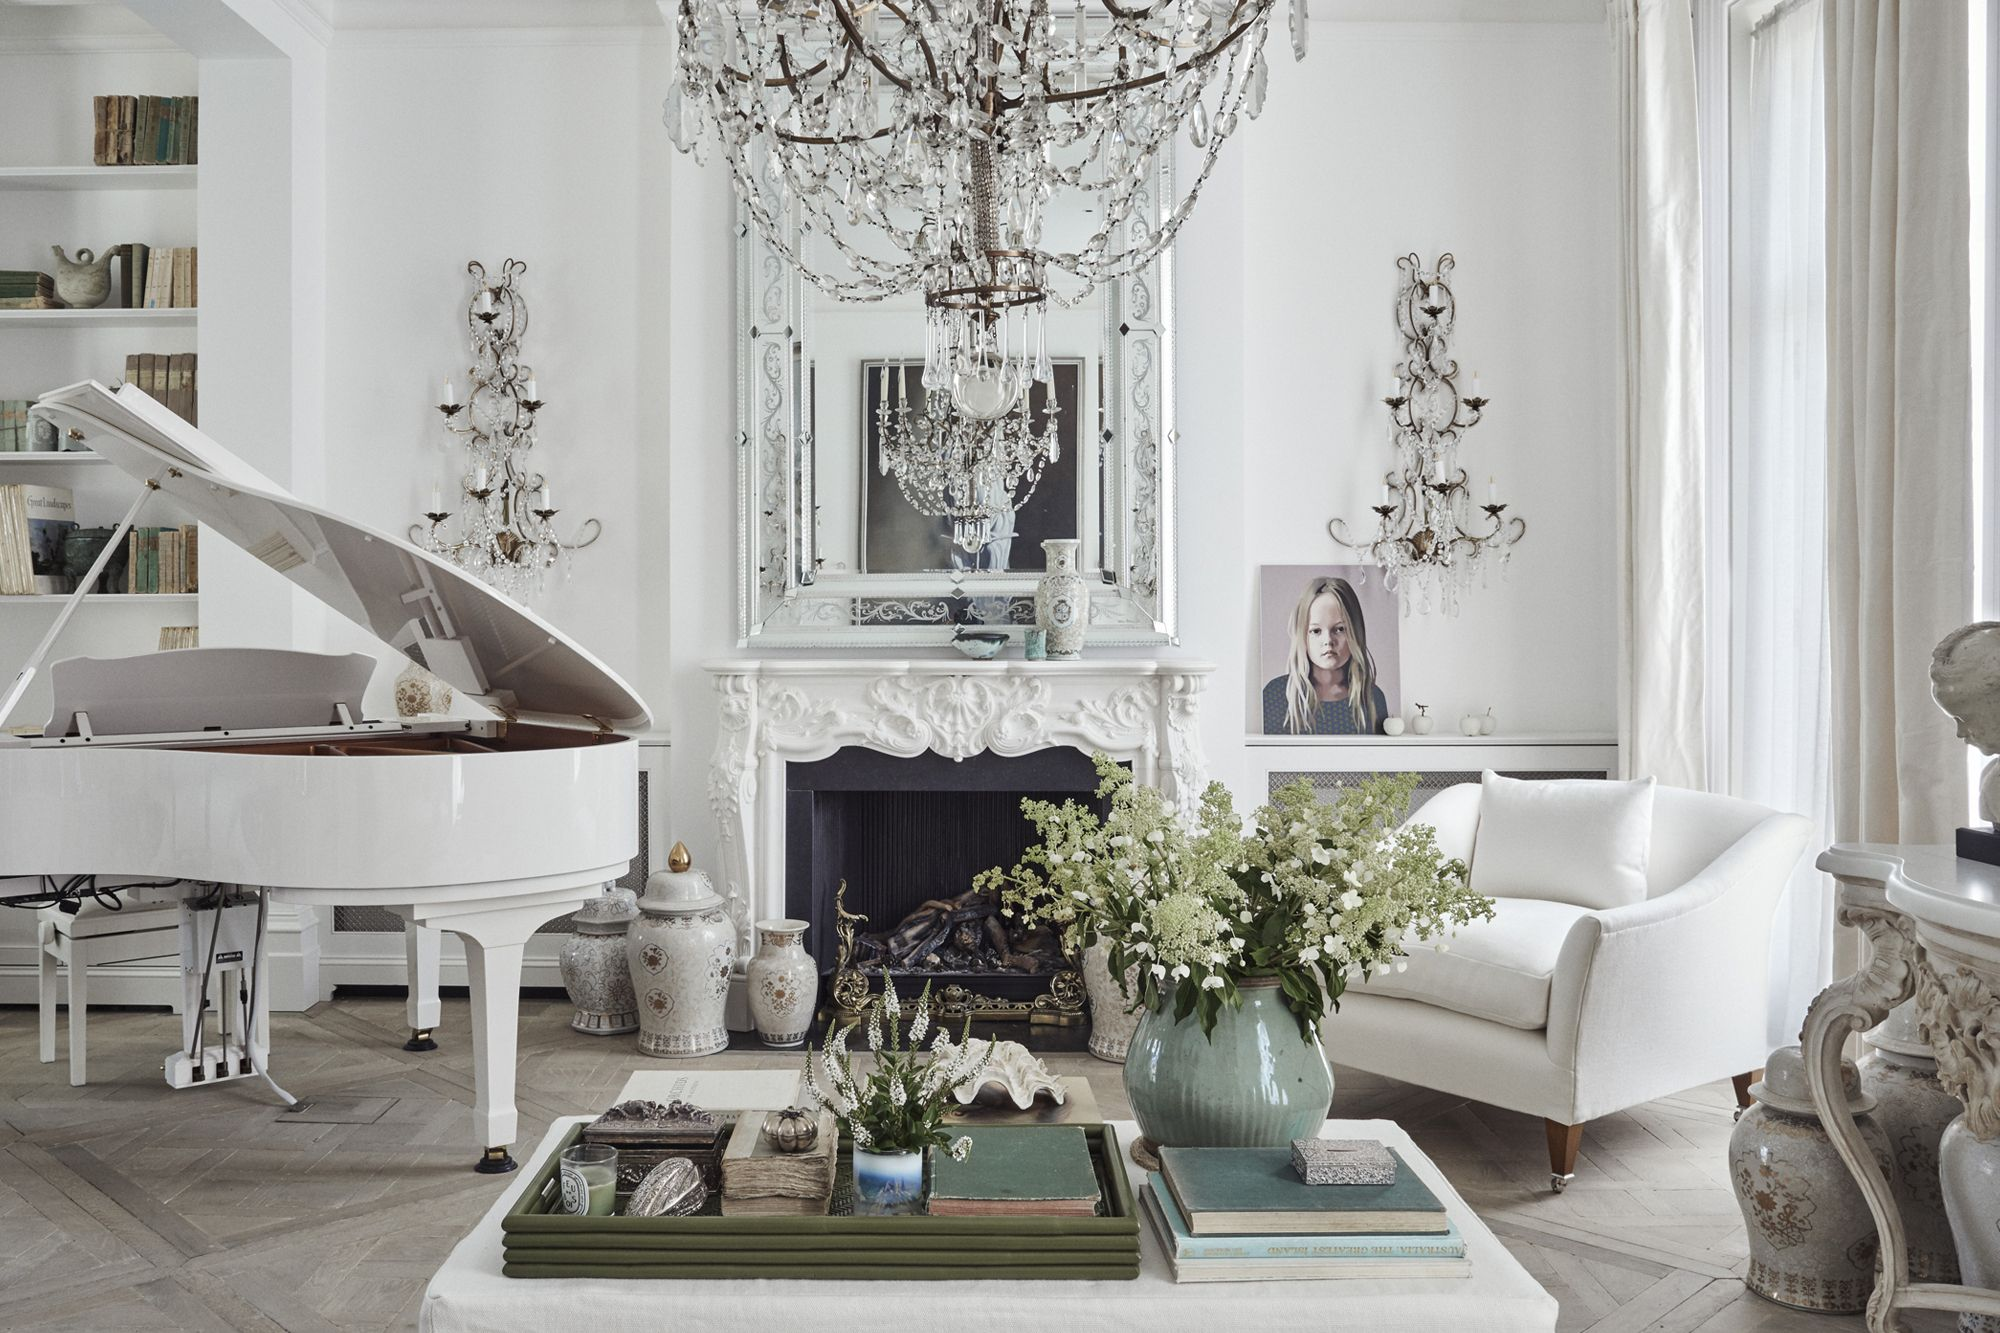 A Venetian Murano glass mirror by Signorelli sits grandly above a bespoke marble fireplace carved with striking Statuario marble